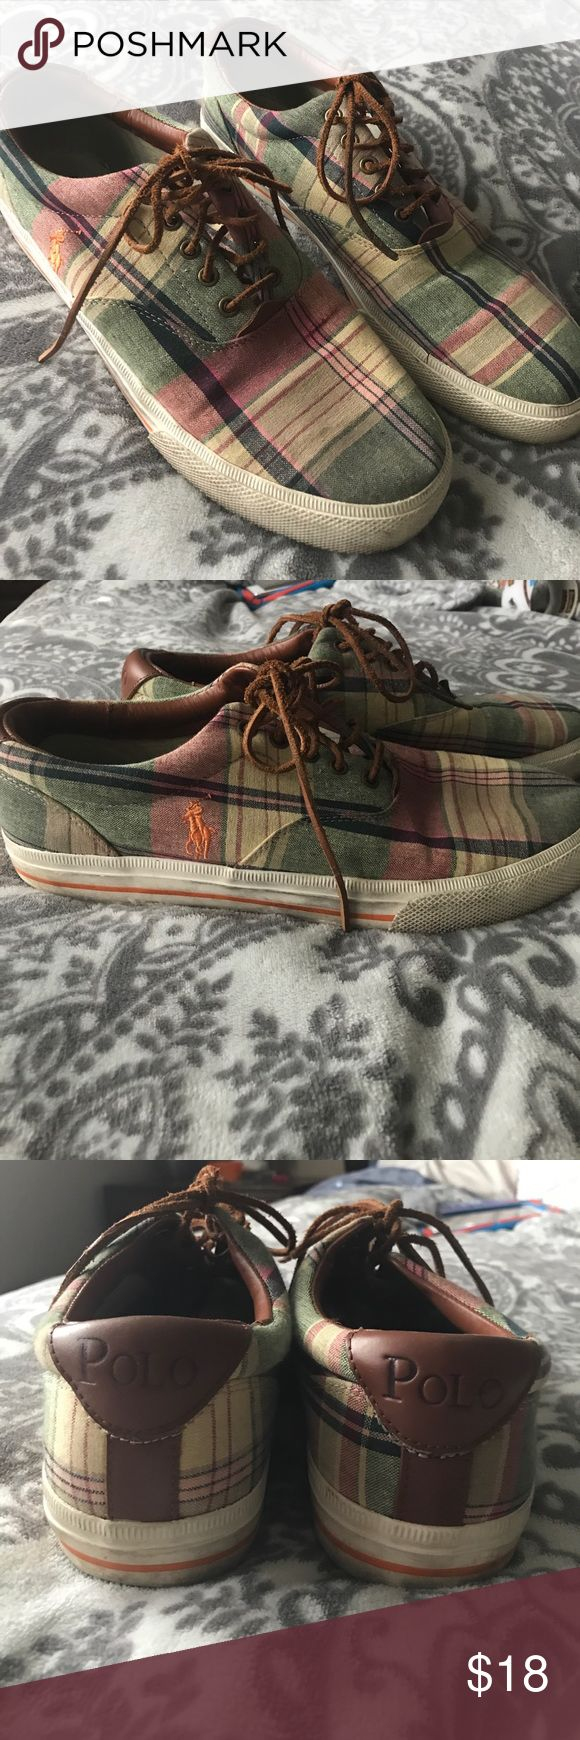 Polo Ralph Lauren men's shoes Gently used. Polo by Ralph Lauren Shoes Boat Shoes